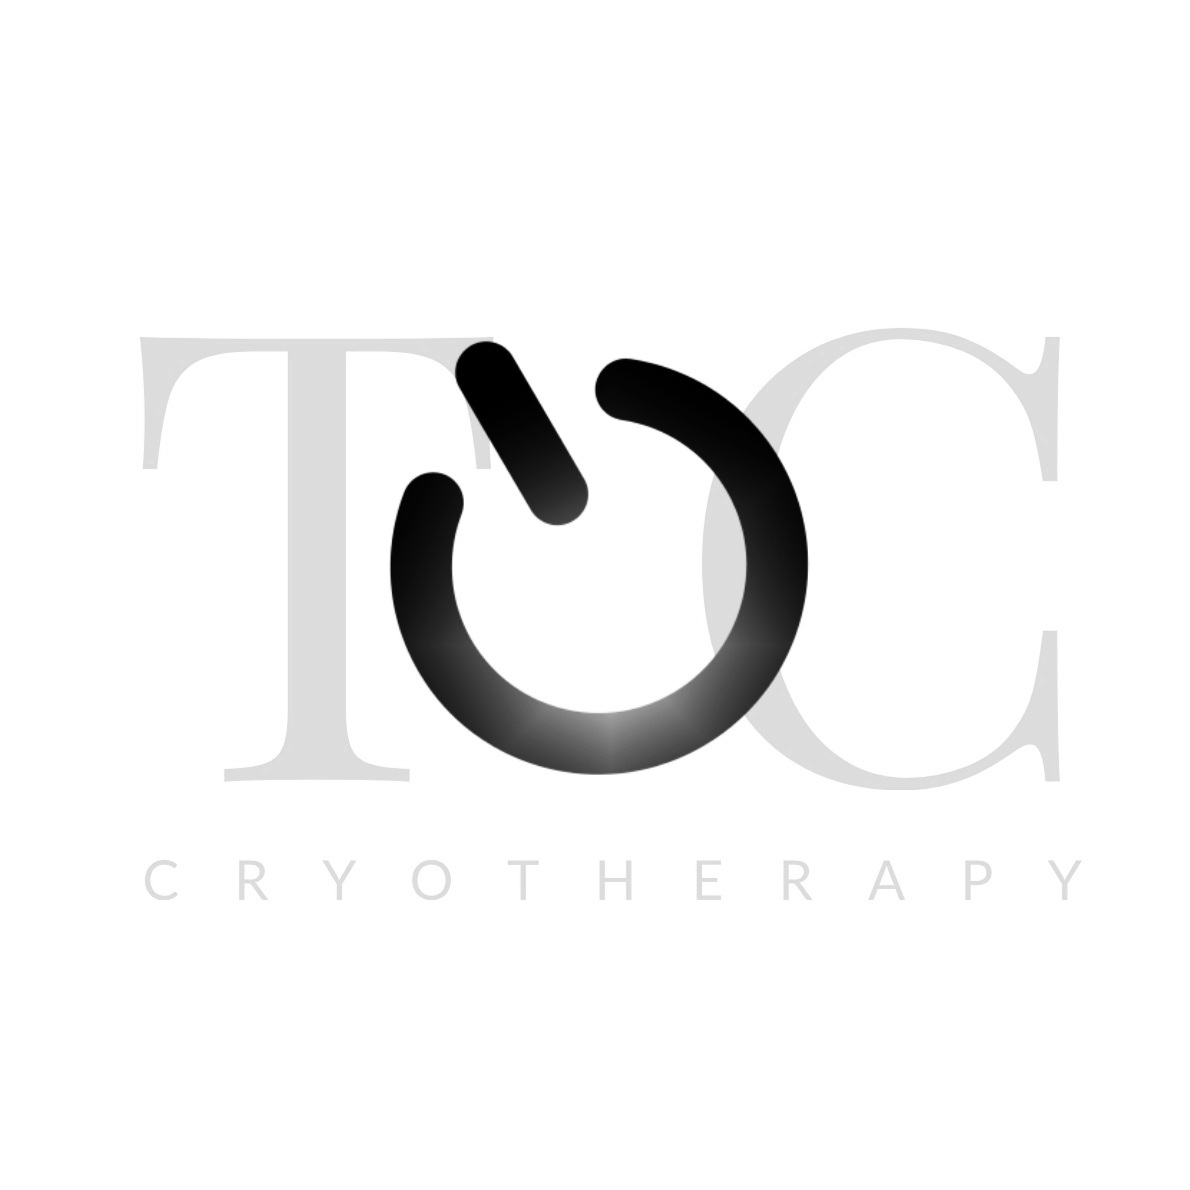 Therapy of Champions - Whole Body Cryotherapy | NormaTec Compression | Cryofacial | RPR | ART